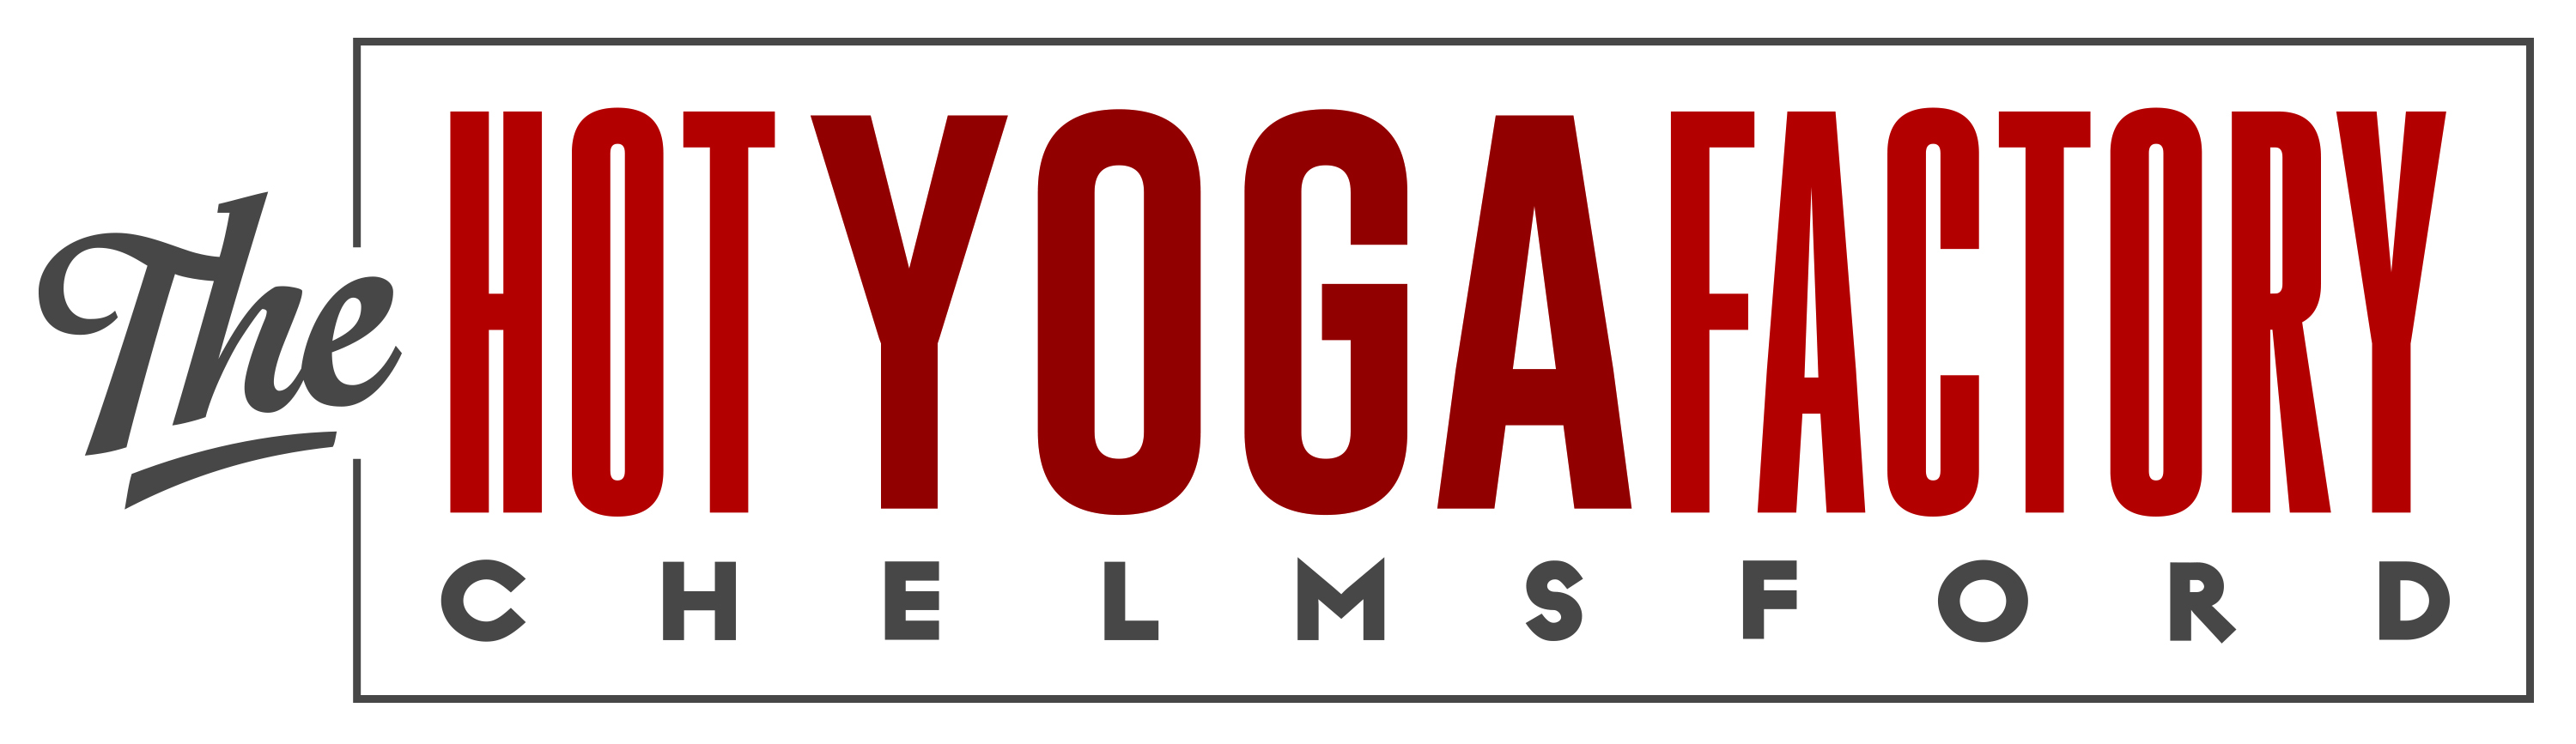 The Hot Yoga Factory Chelmsford